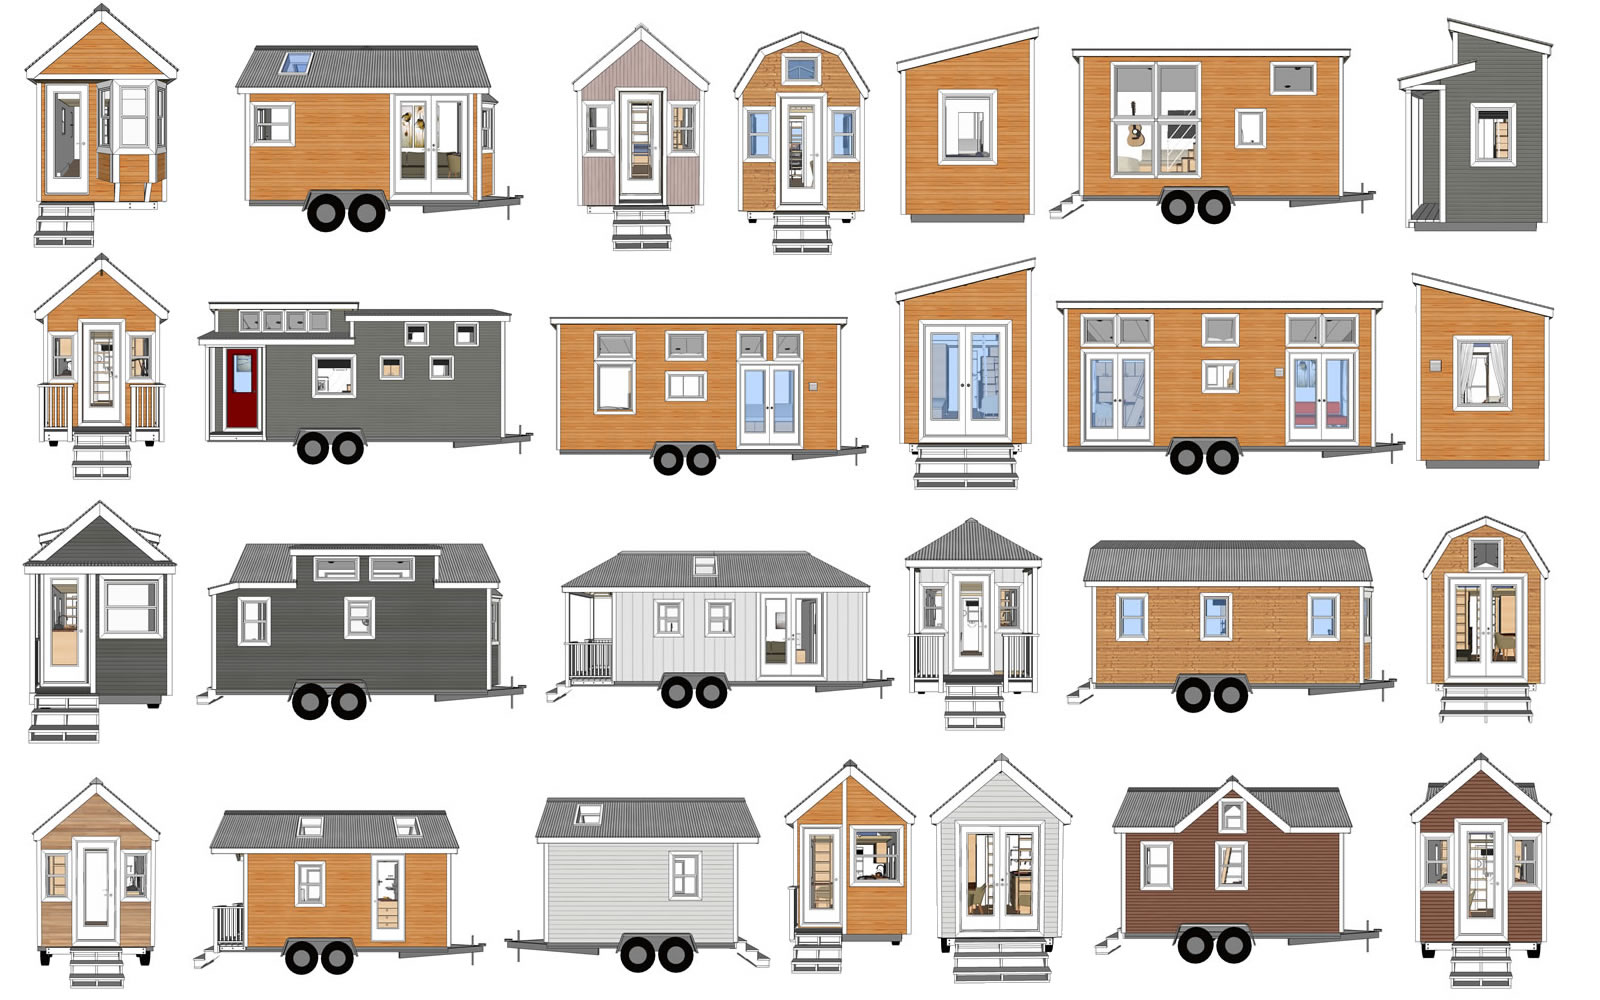 Mix U0026 Match Your Own Tiny House Design Mashup